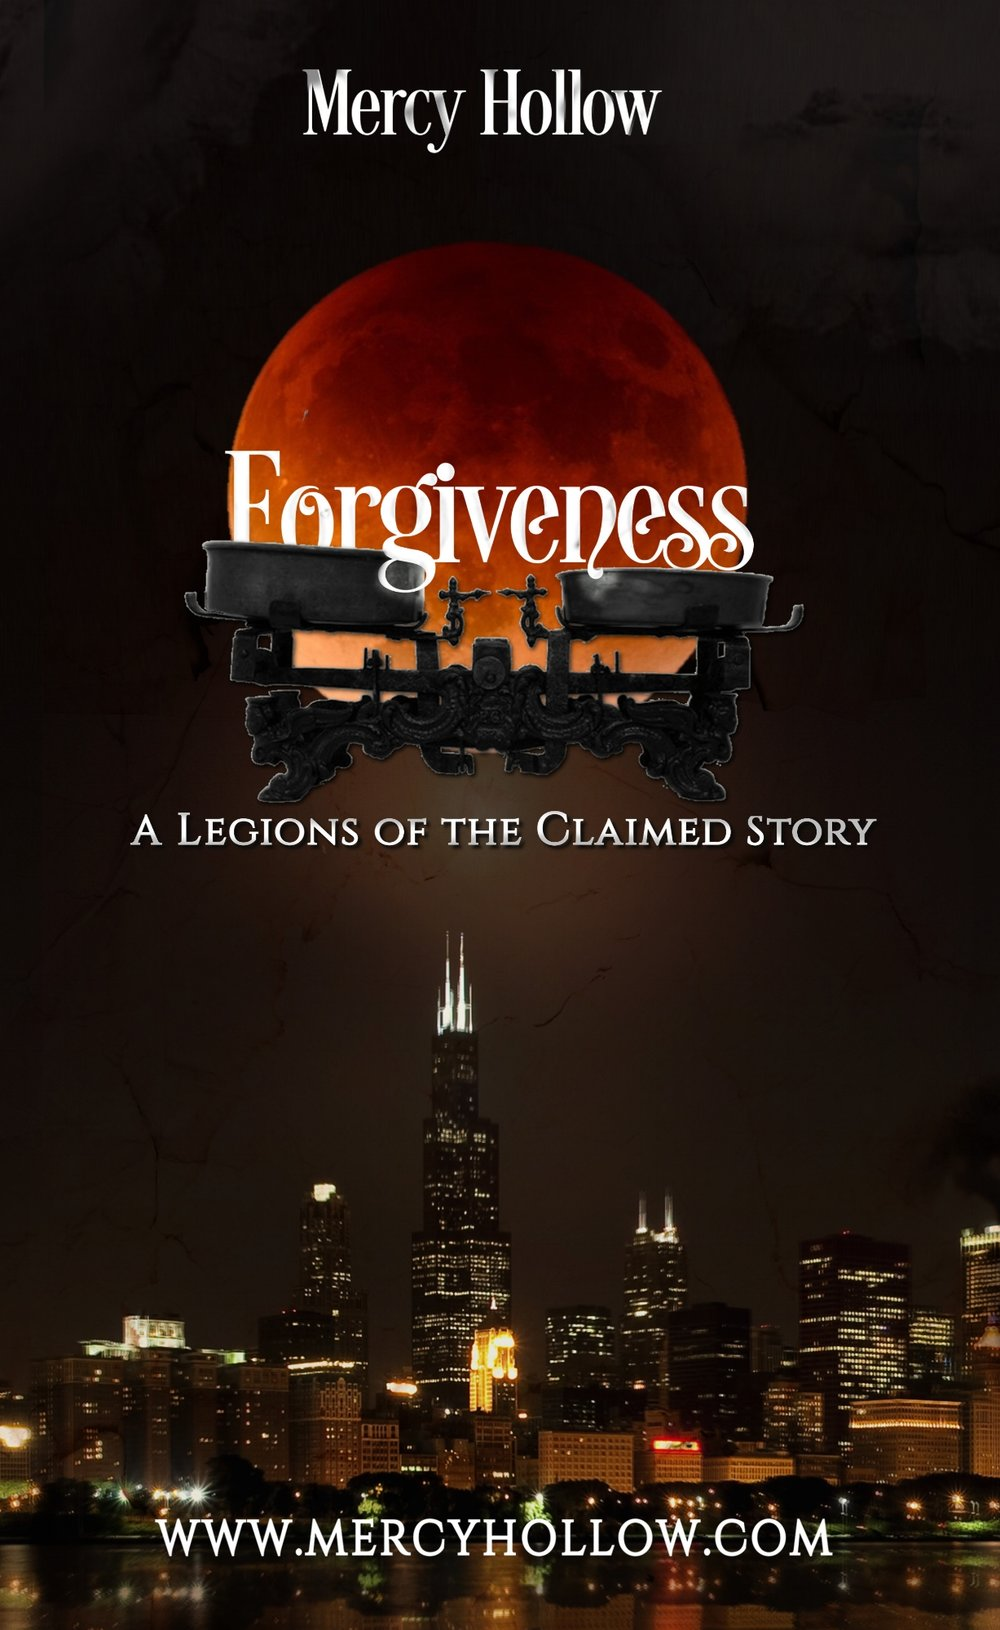 Join the street team and get a free Legions of the Claimed story - Forgiveness.